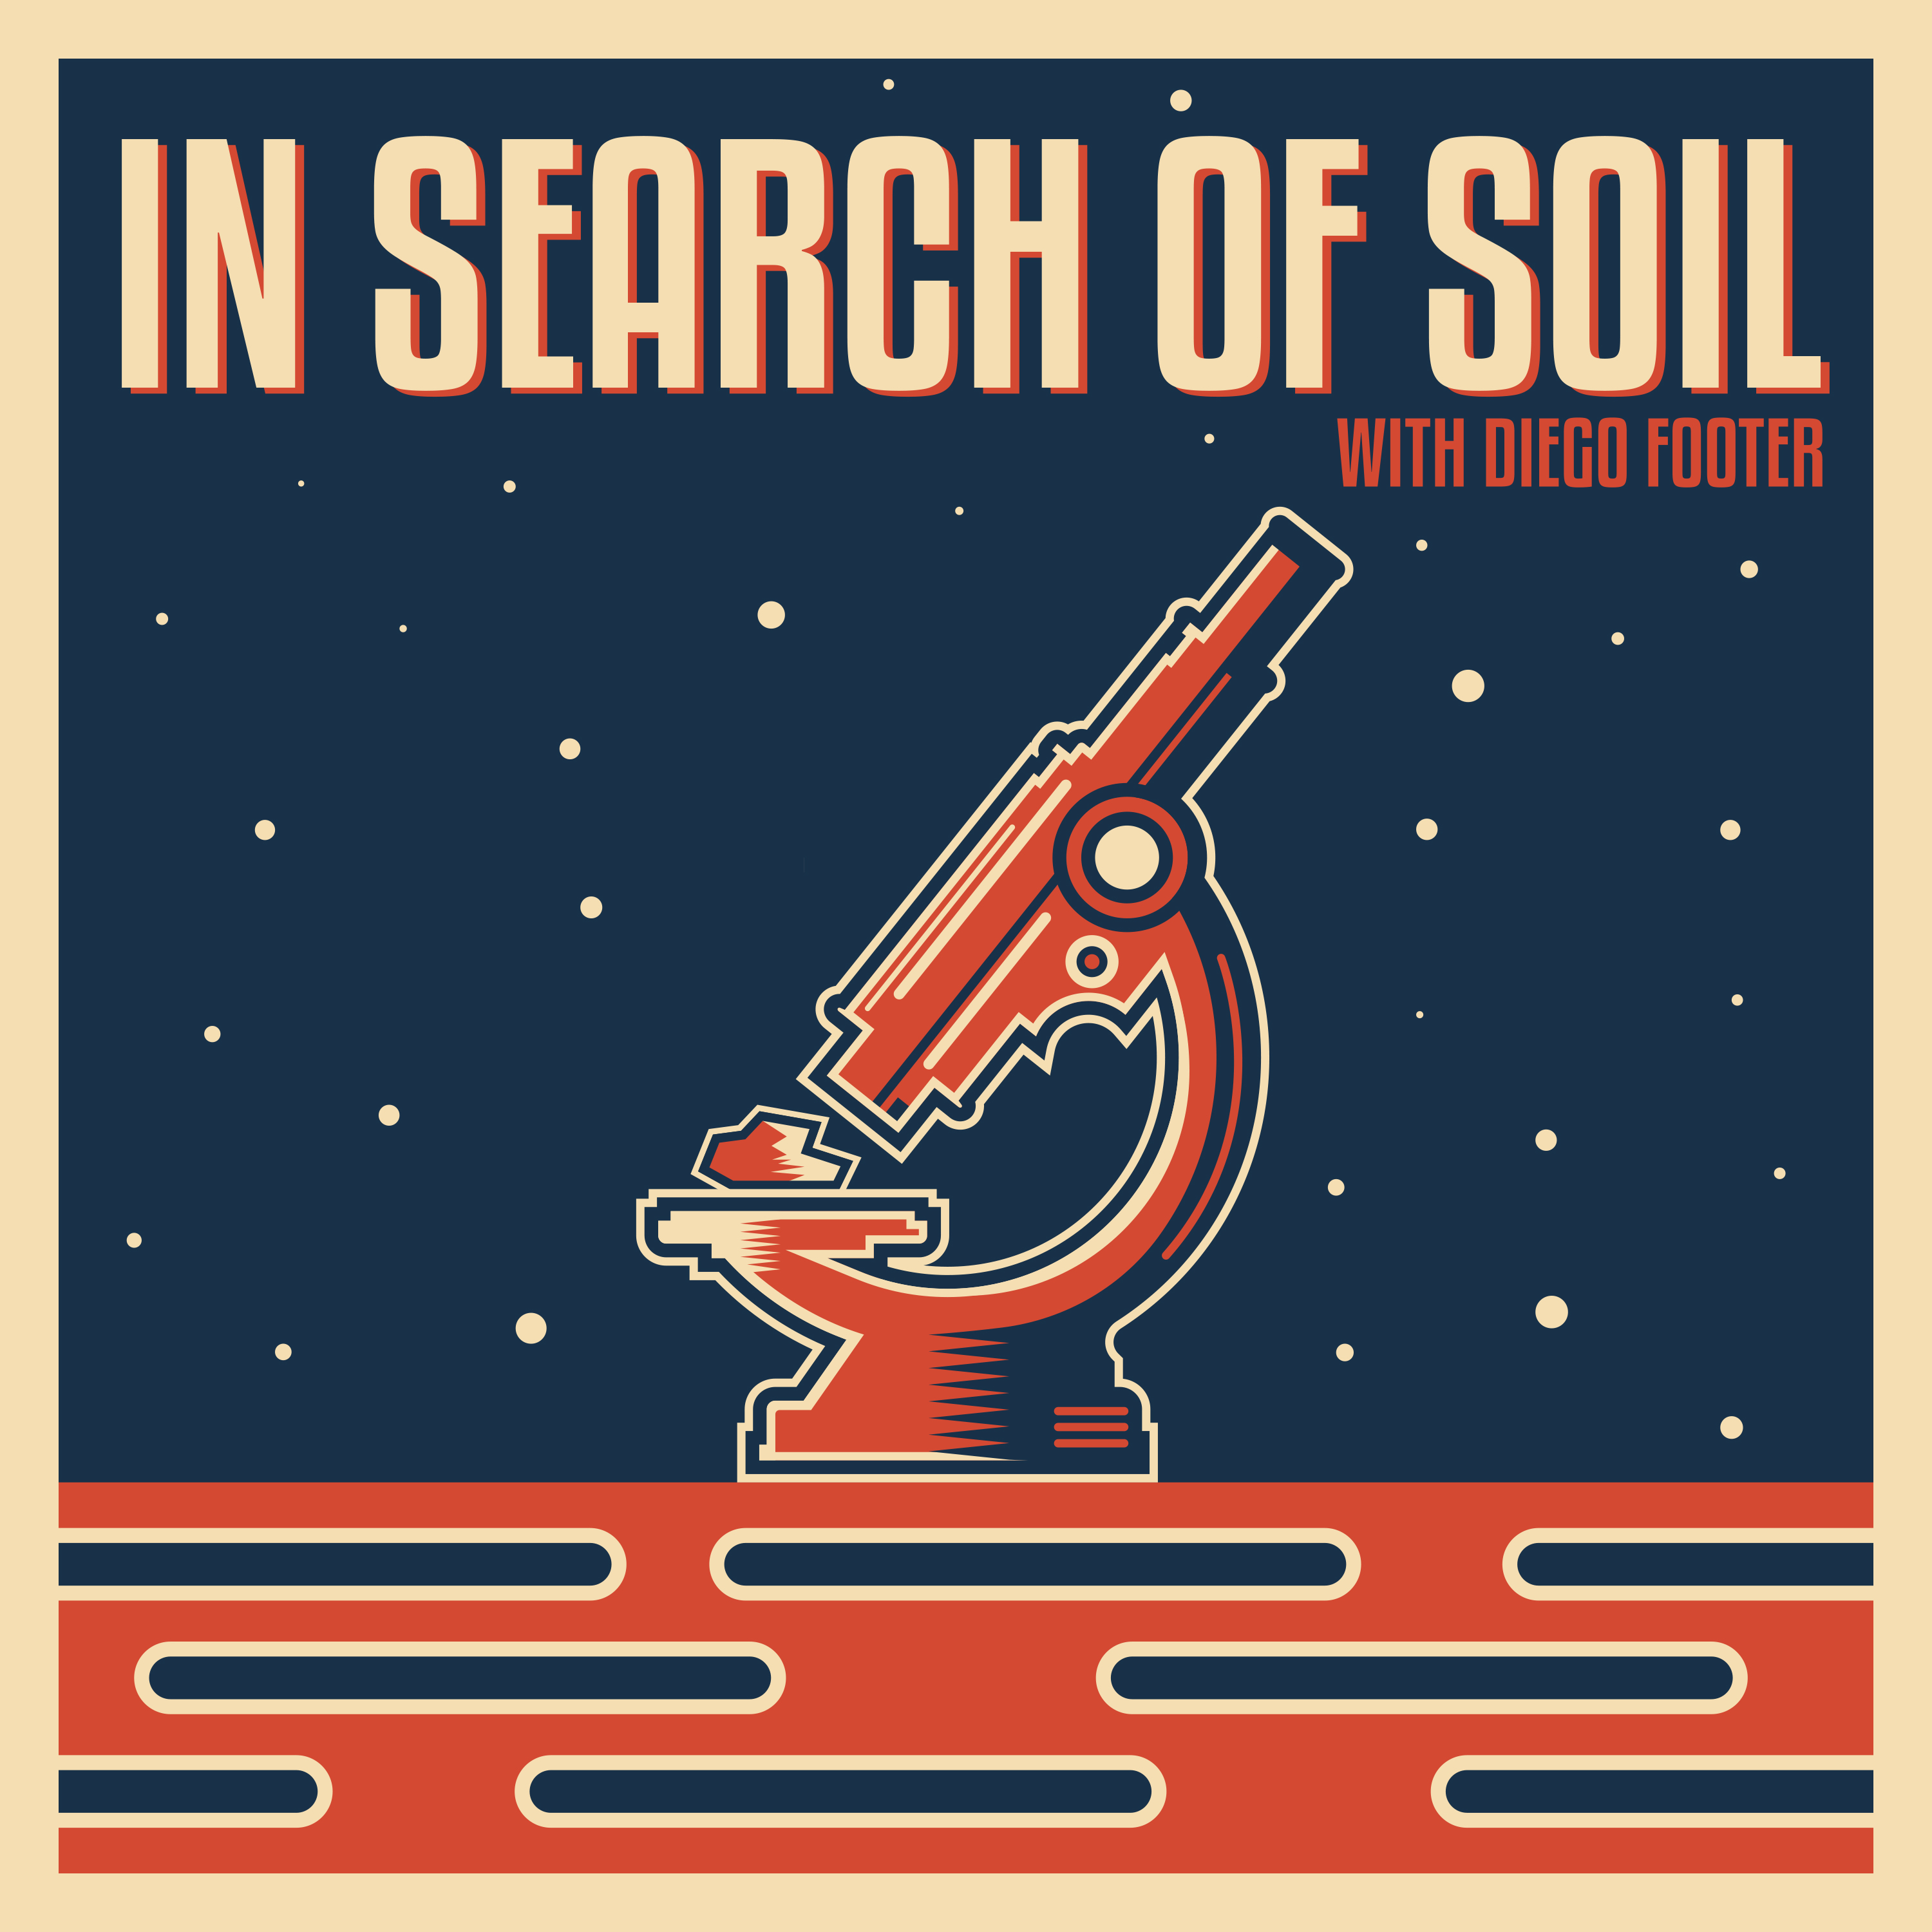 Welcome to In Search of Soil (Trailer)